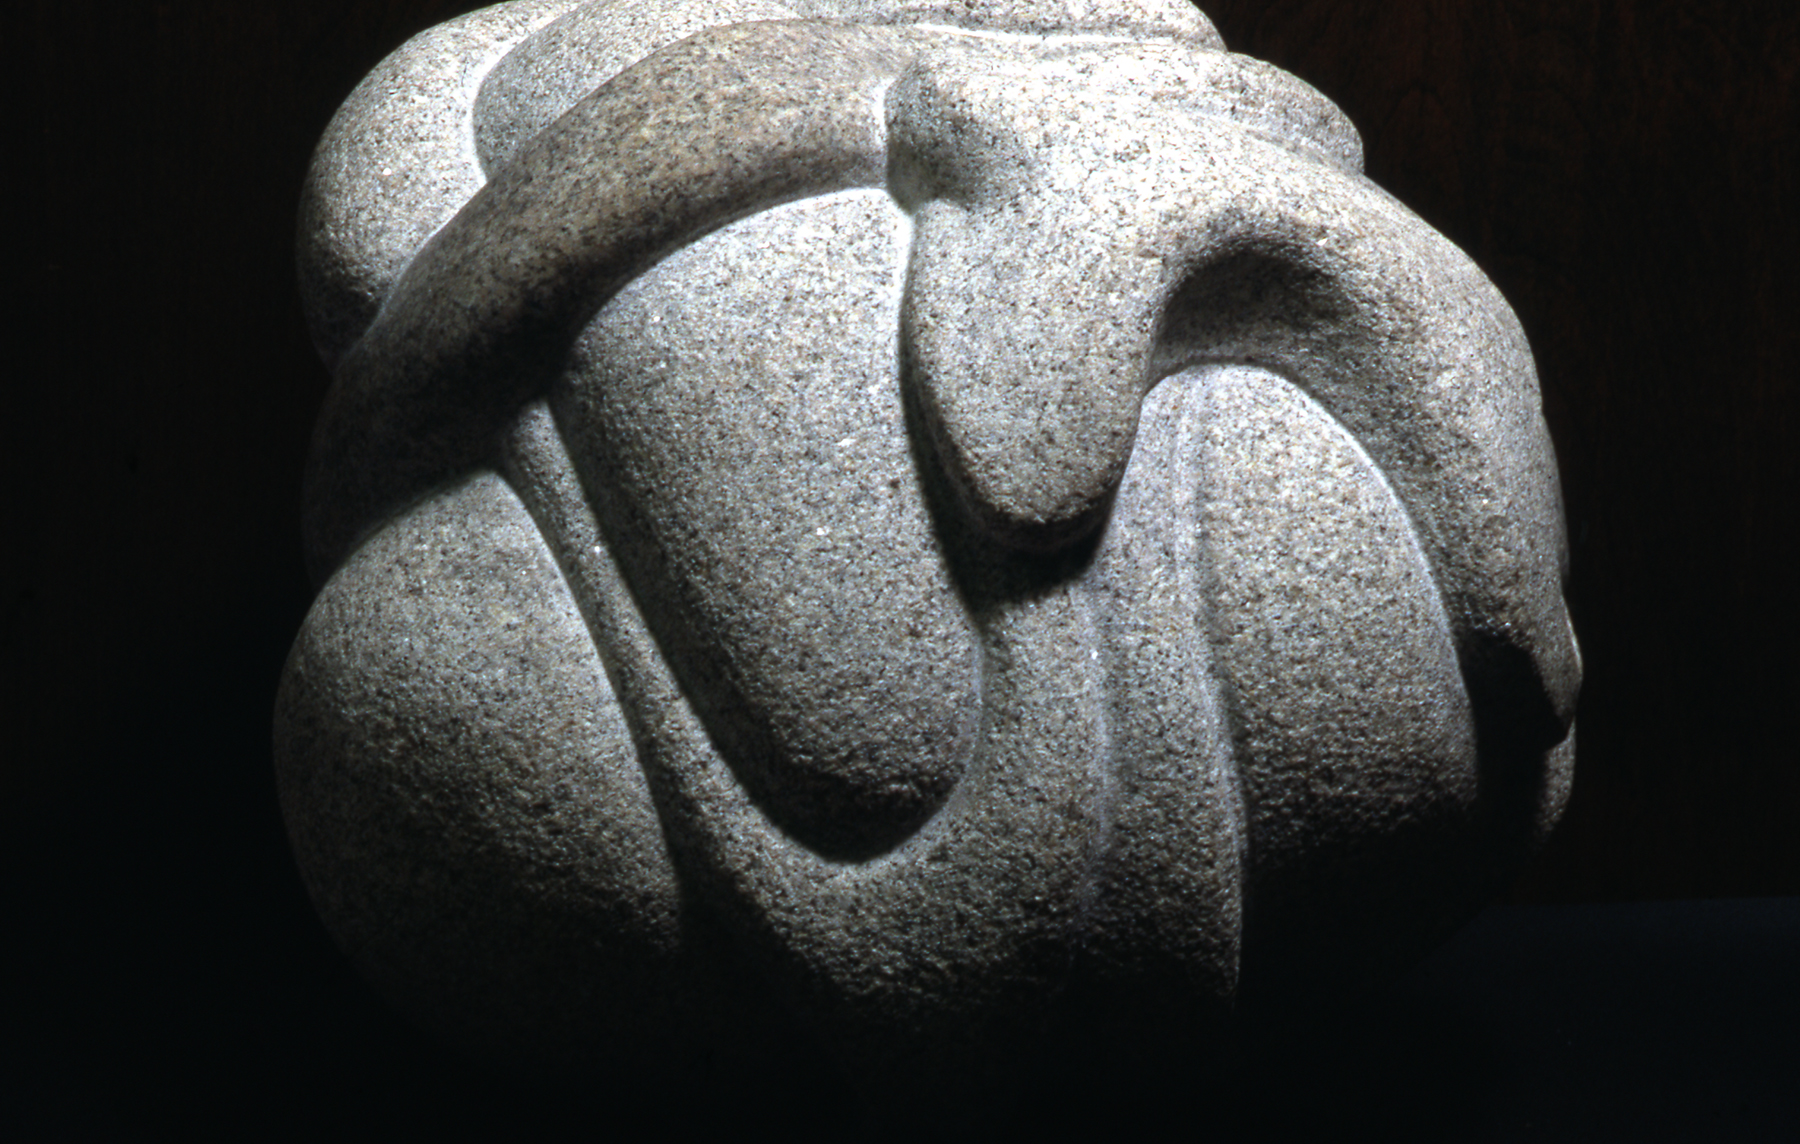 Gray stone carved in graceful stretching forms